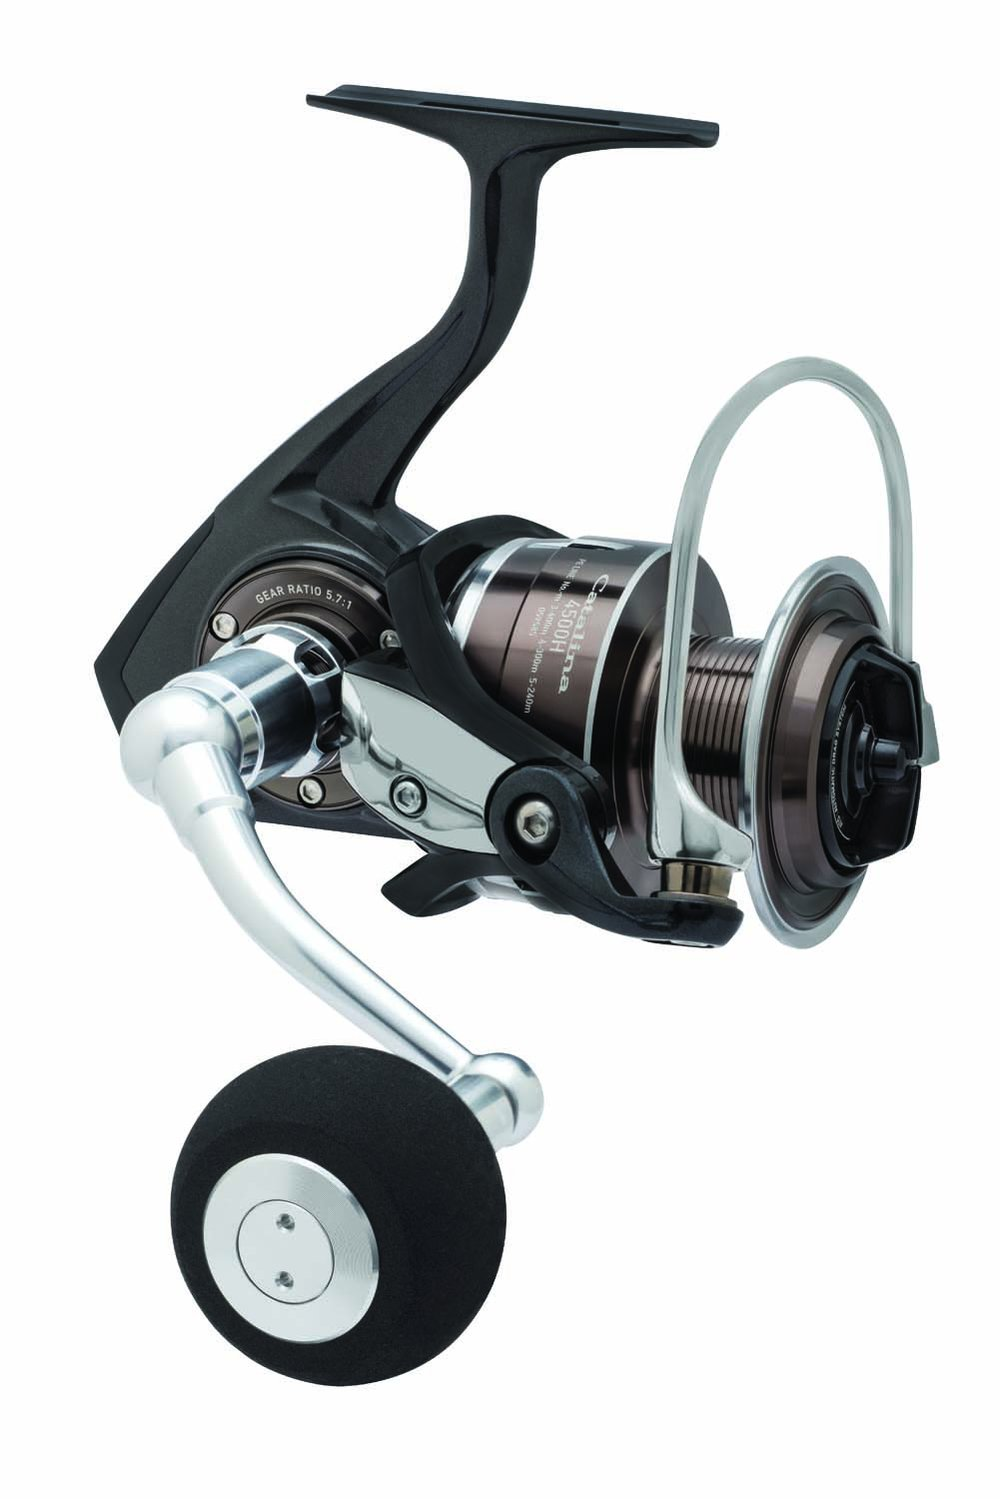 Daiwa 16 Catalina 4000 Reel